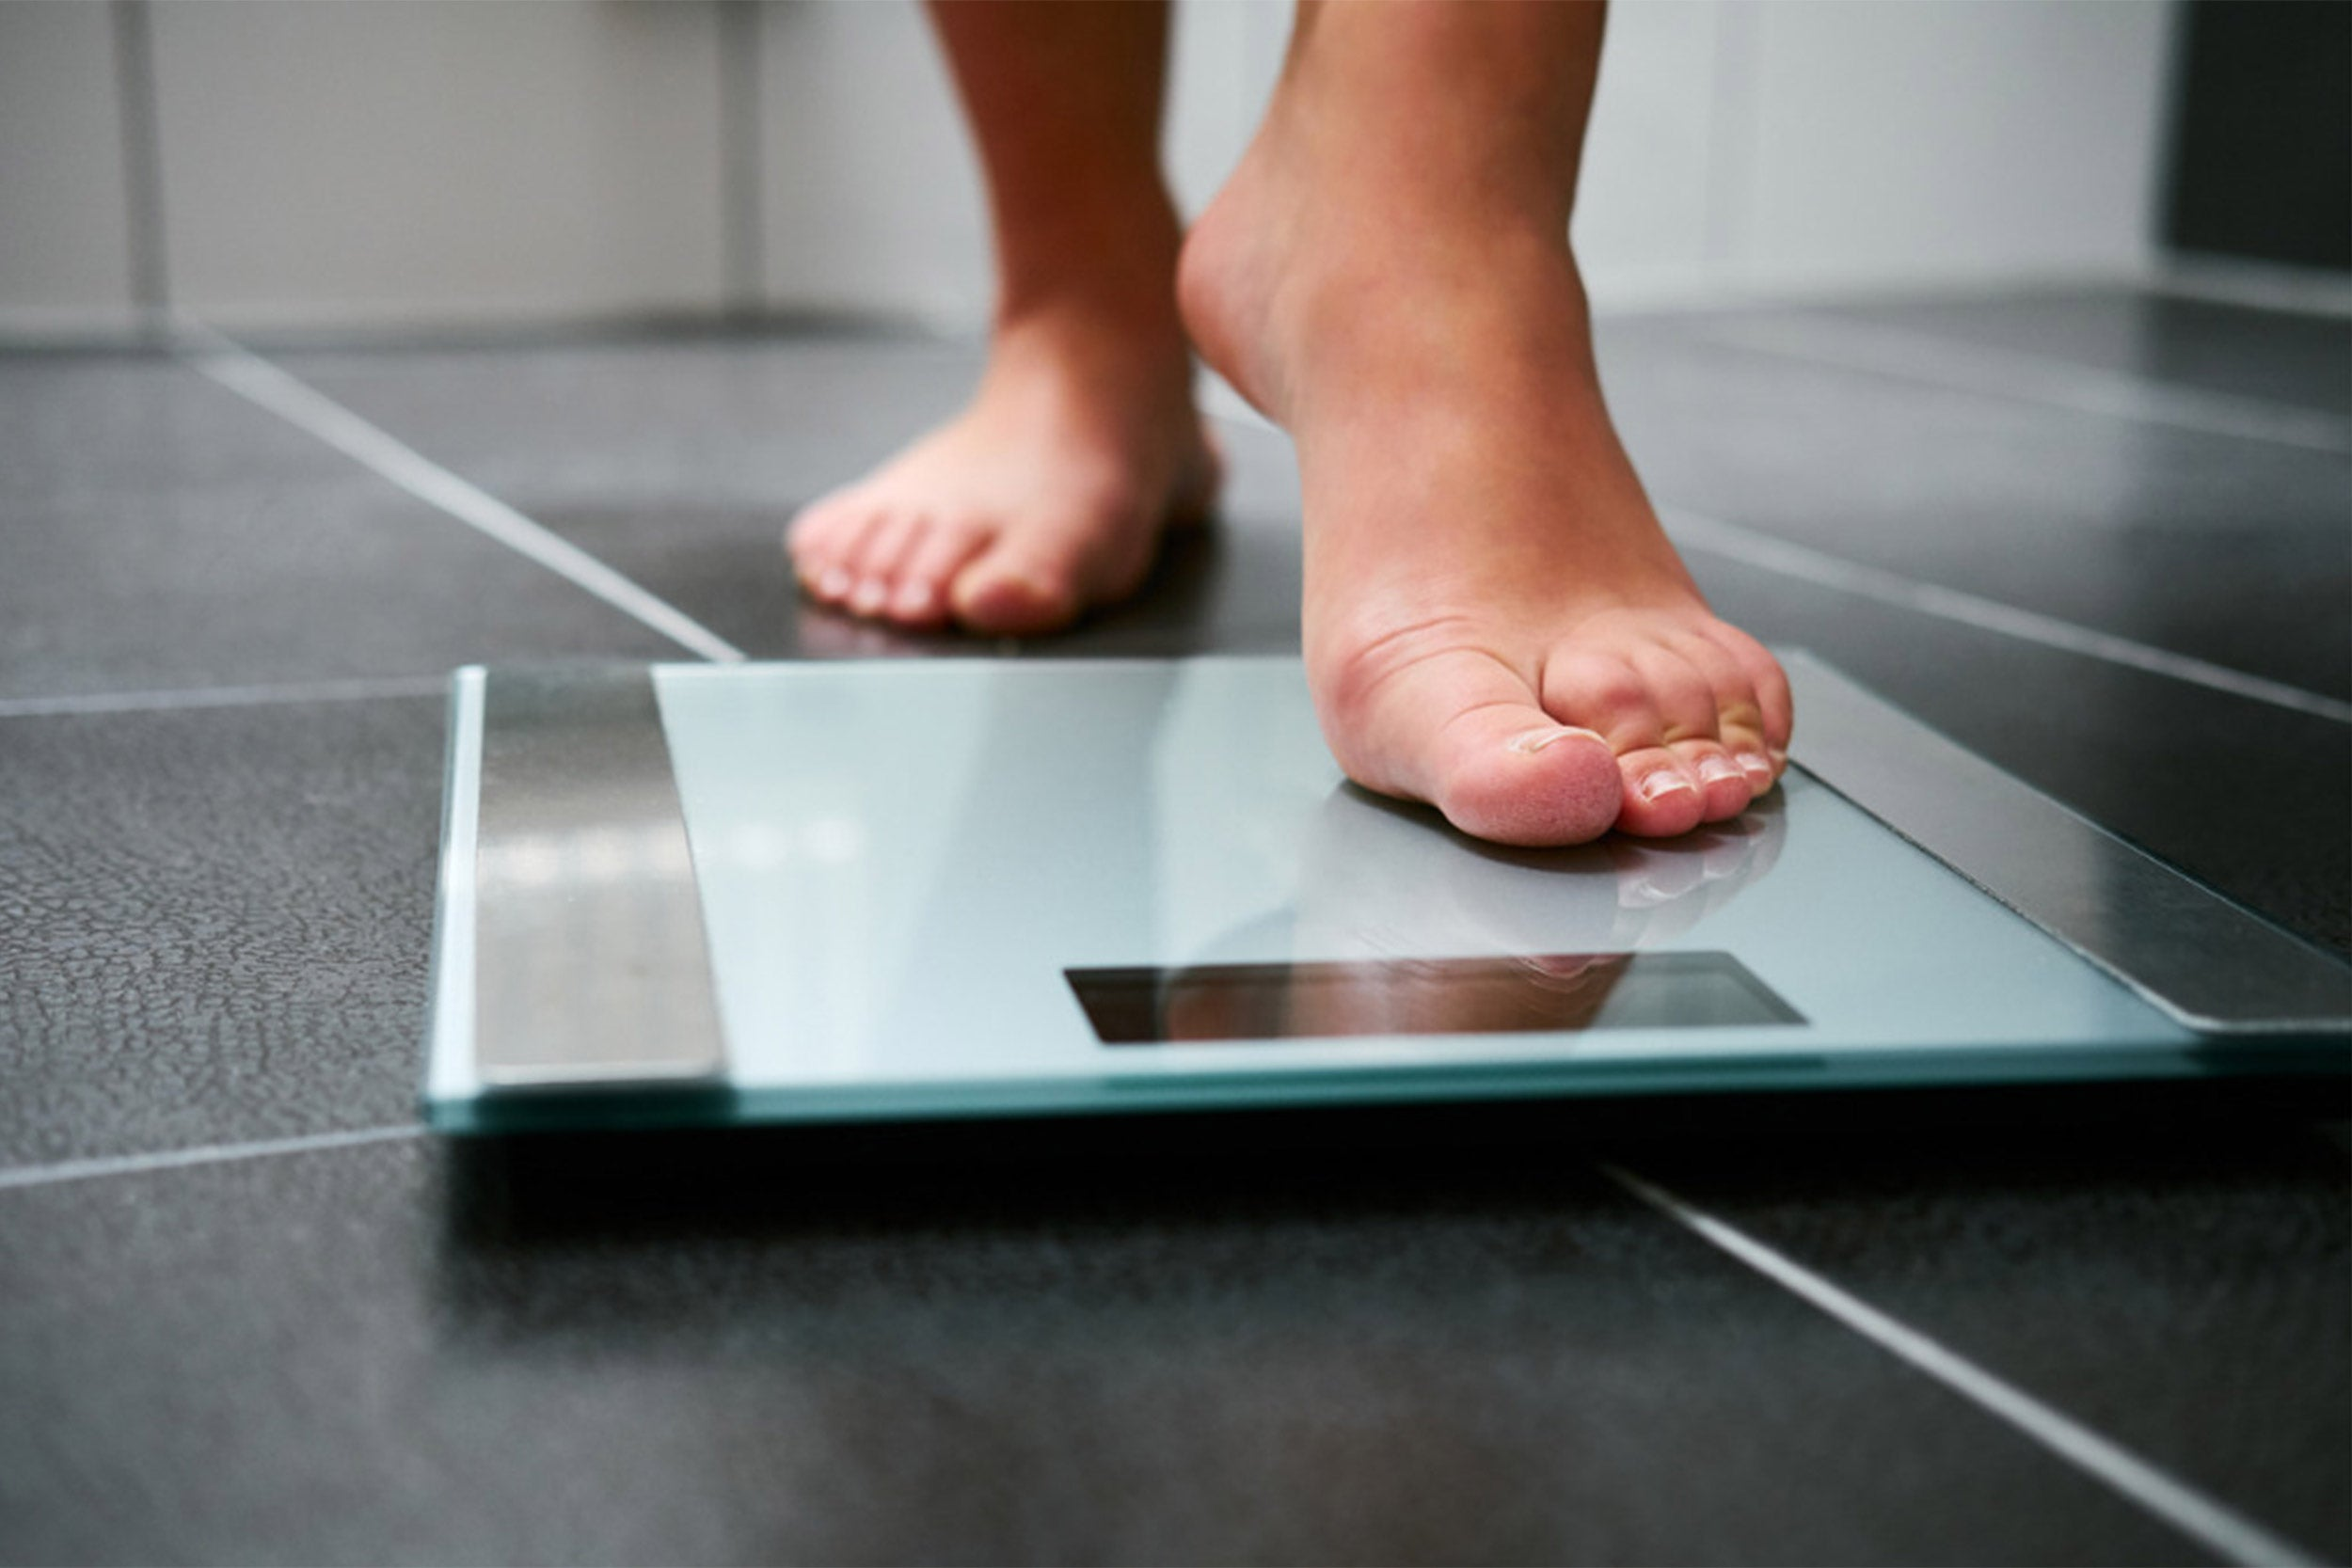 Person getting ready to weigh themselves on a scale.